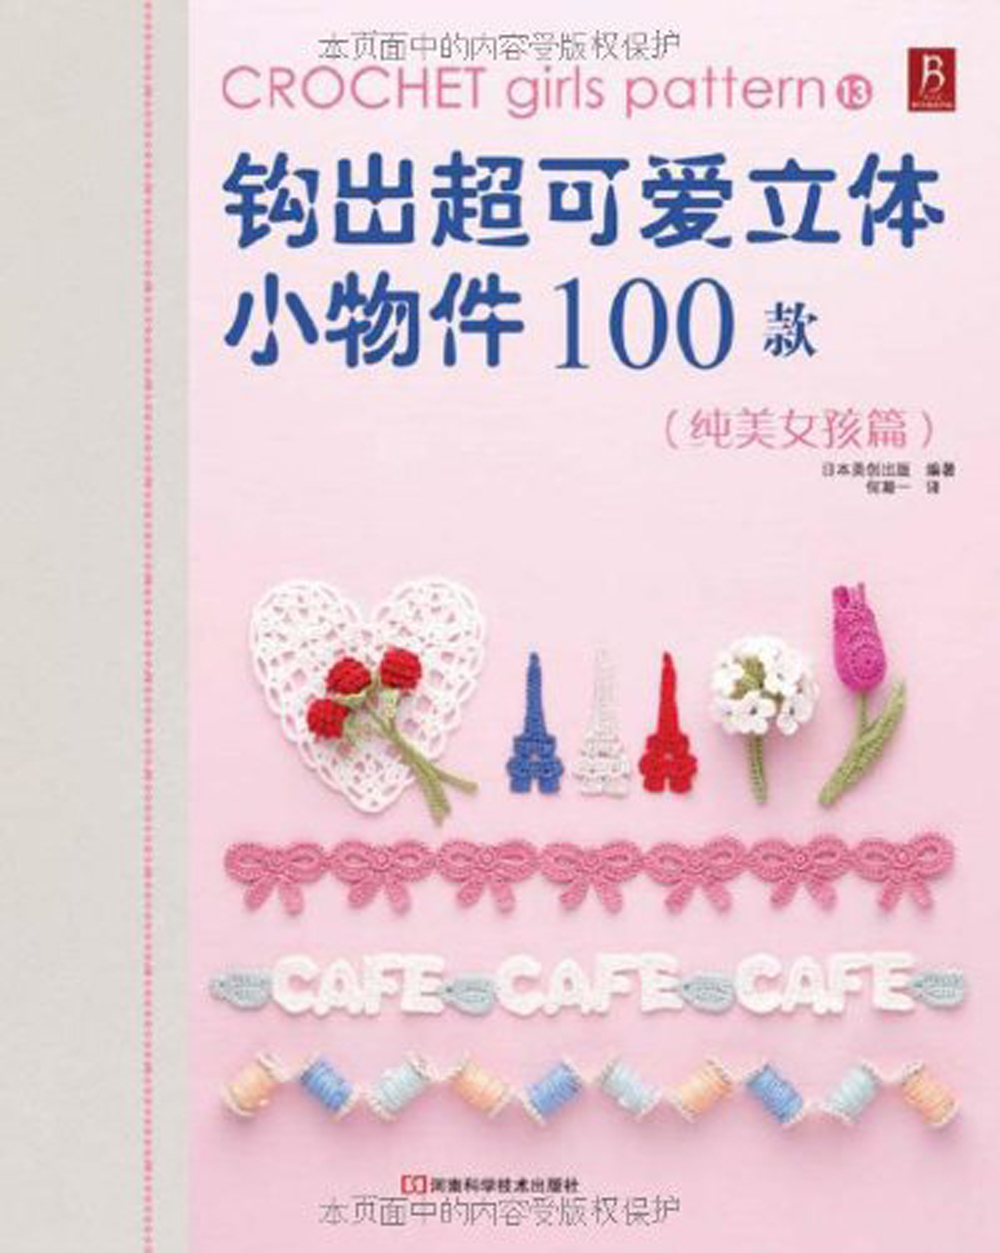 Crochet Girls Pattern / Weaving super-cute 3d small objects 100 models Chinese knitting book / Japanese Handmade Carft Book 100 super cute little embroidery chinese embroidery handmade art design book